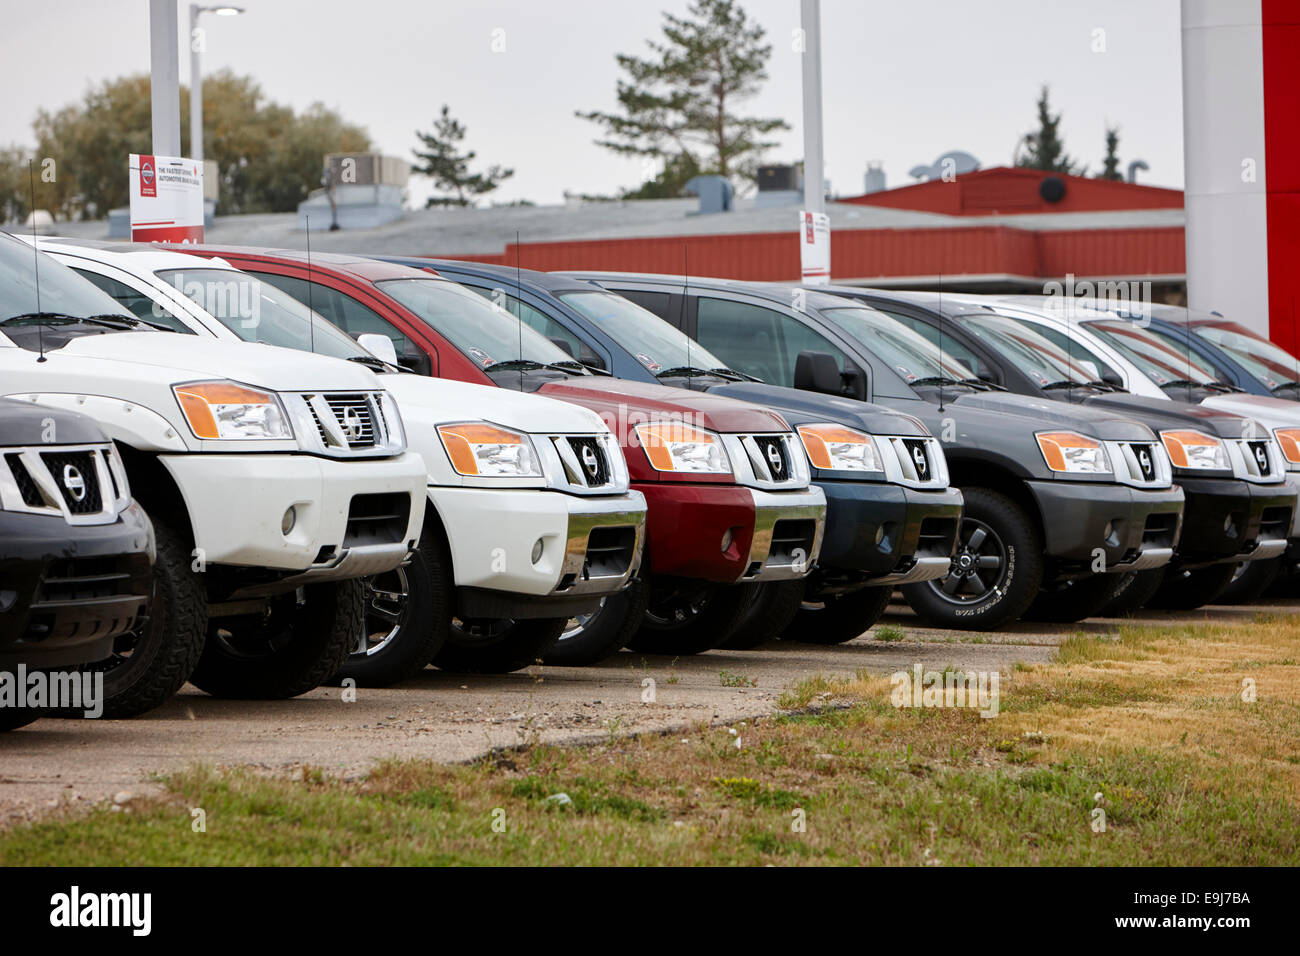 new cars on lot of dealership nissan new car dealership Saskatchewan Canada - Stock Image